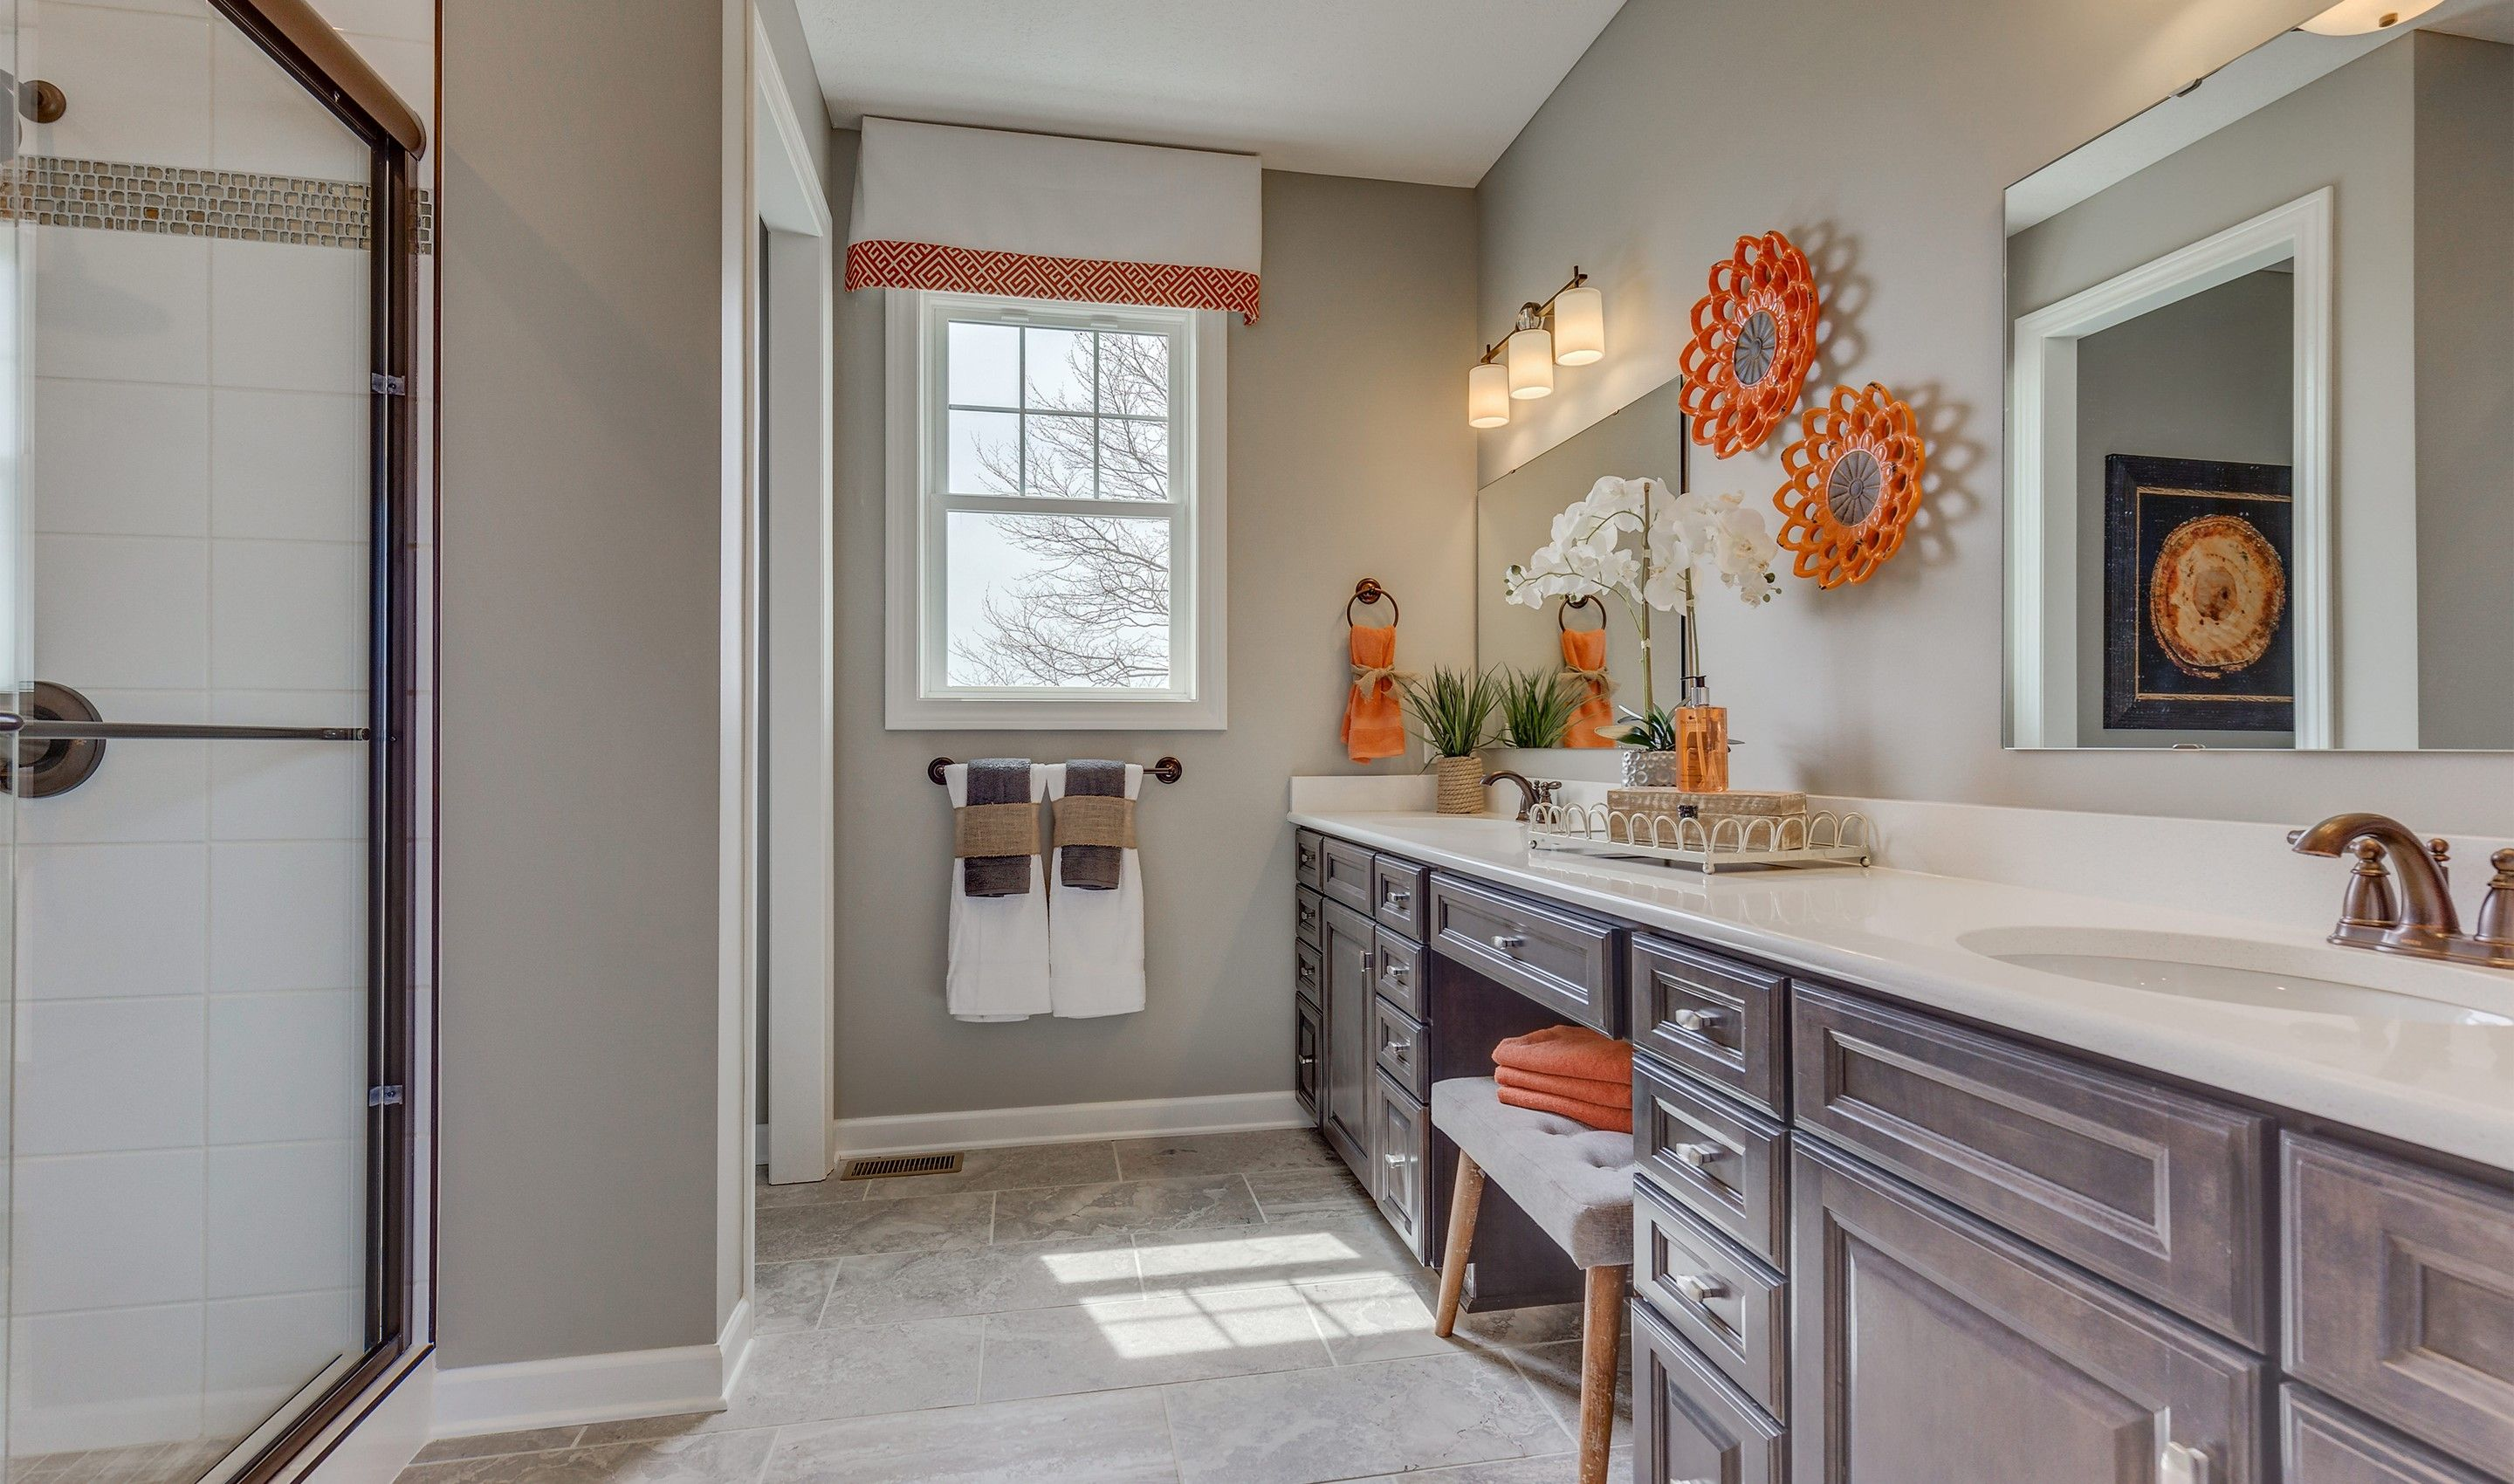 Bathroom featured in the Faulkner By K. Hovnanian® Homes - Build on Your Lot in Toledo, OH